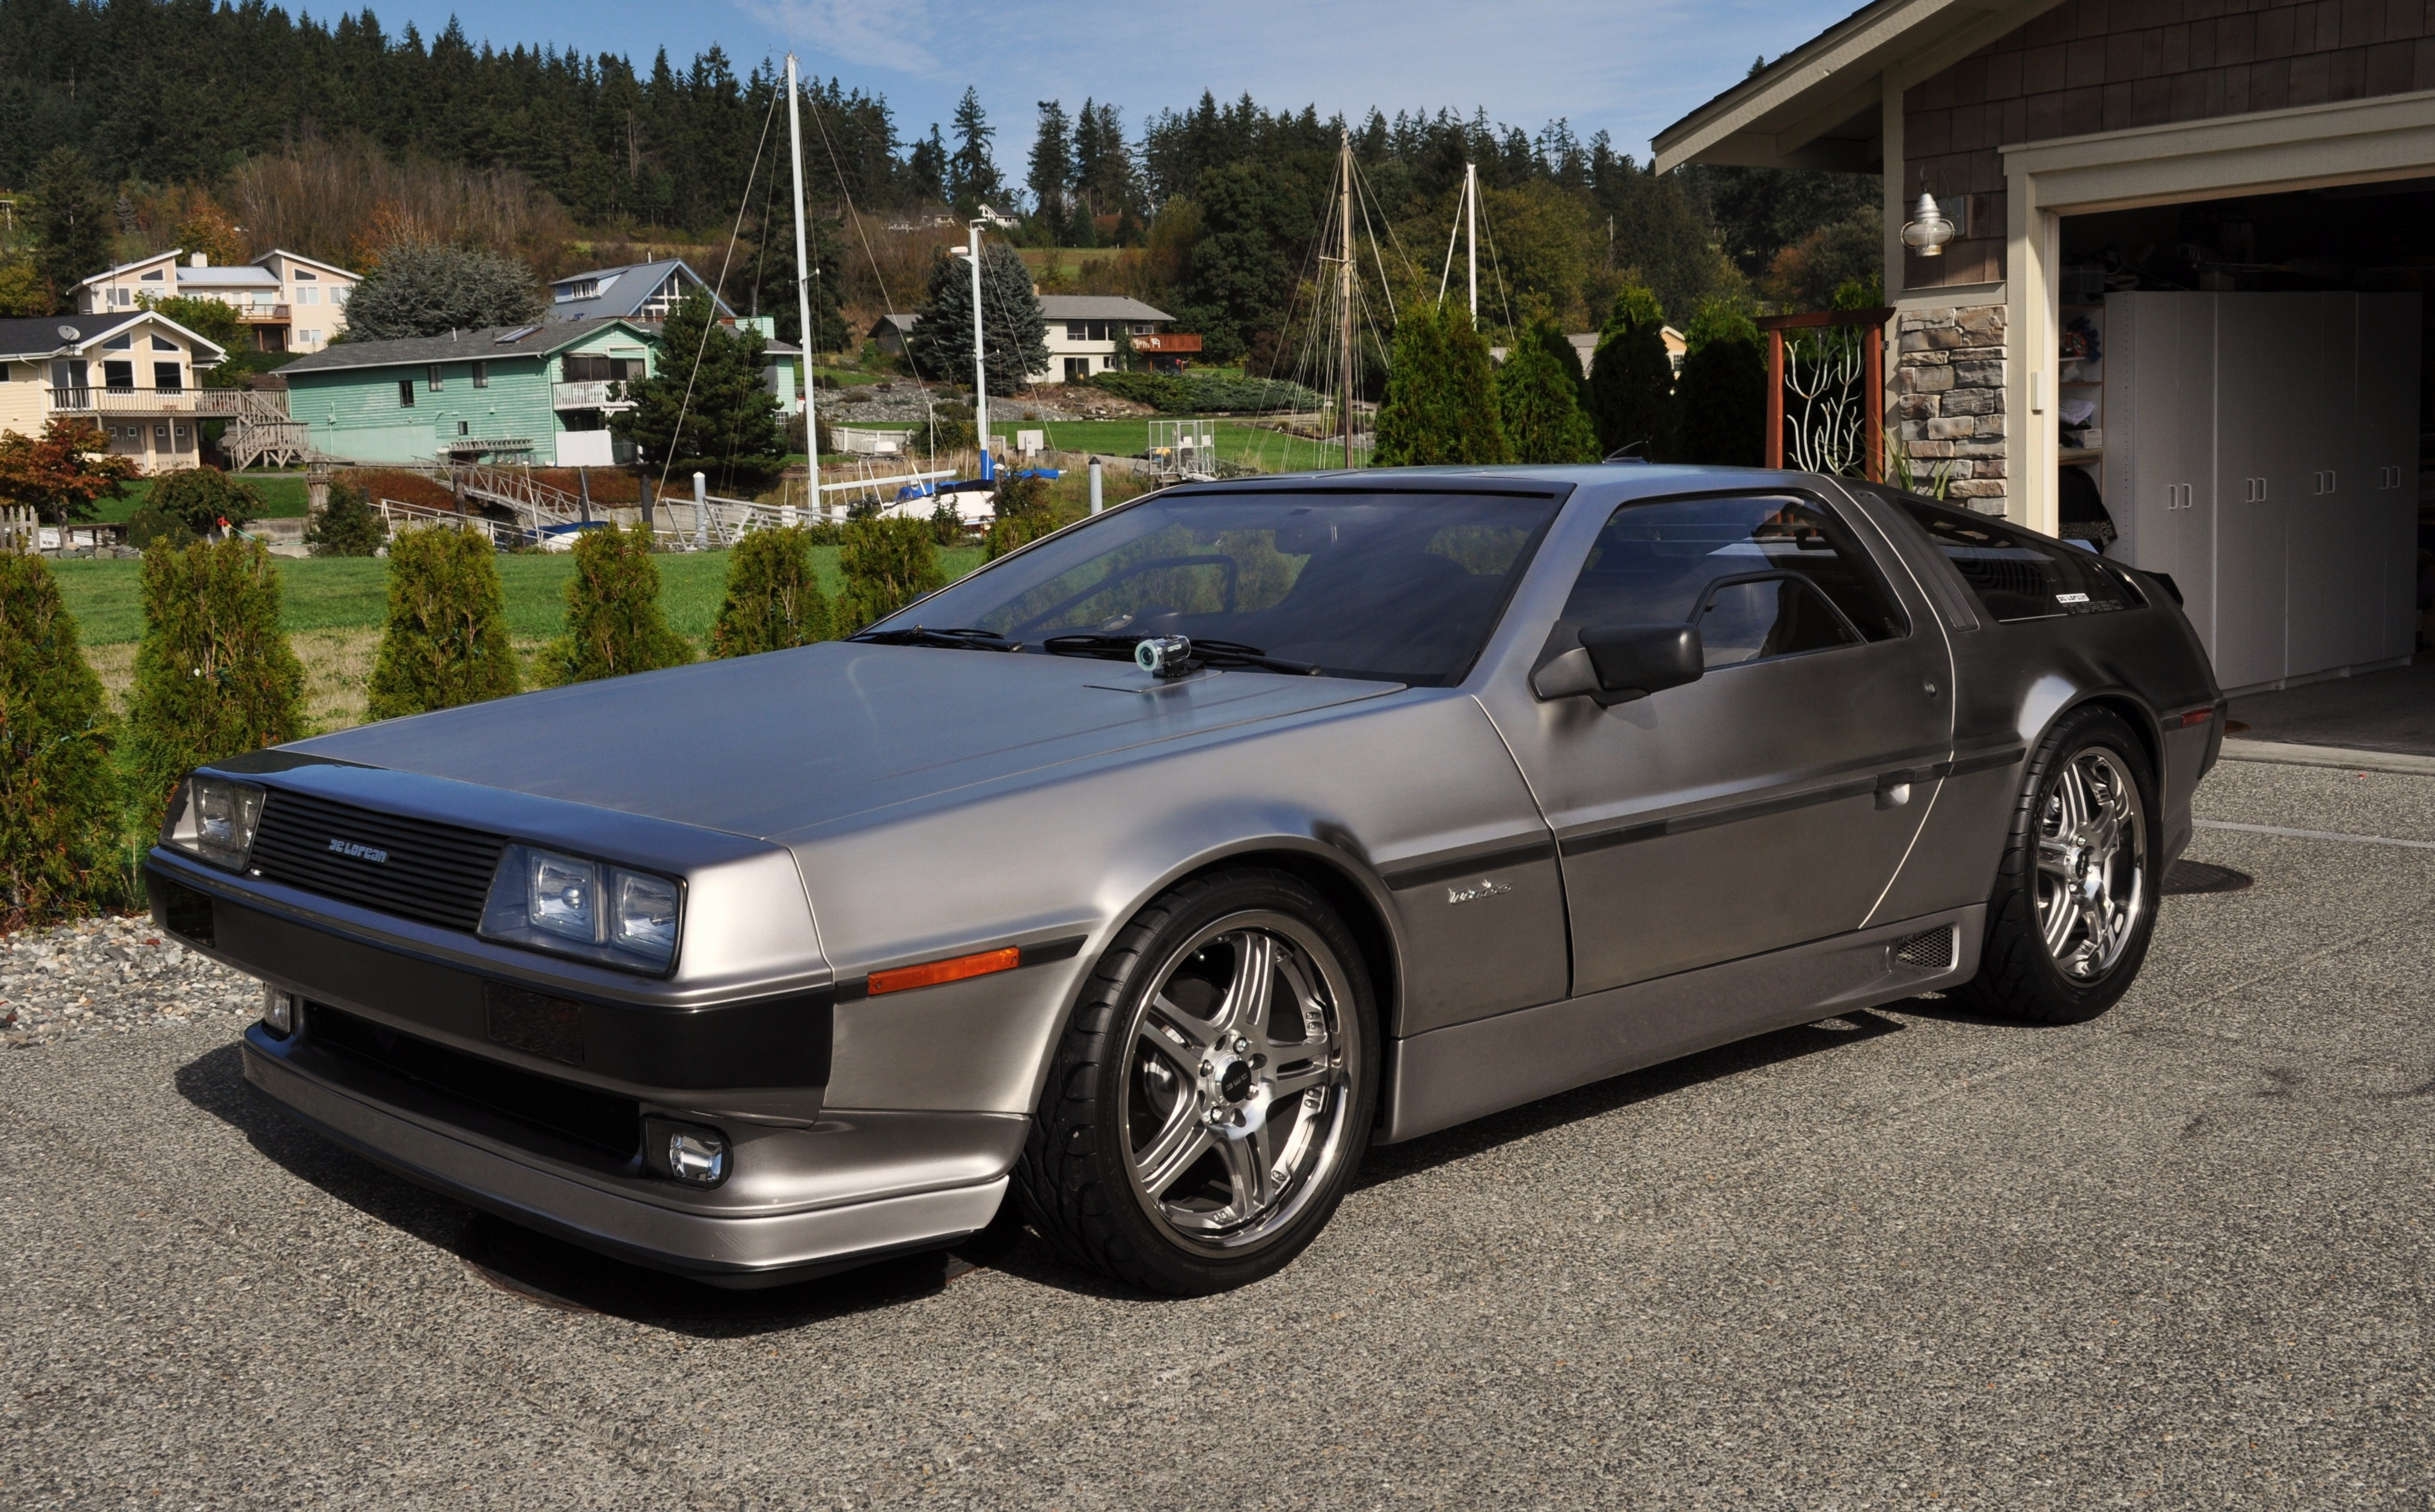 Delorean07 1981 DeLorean DMC-12 14812483